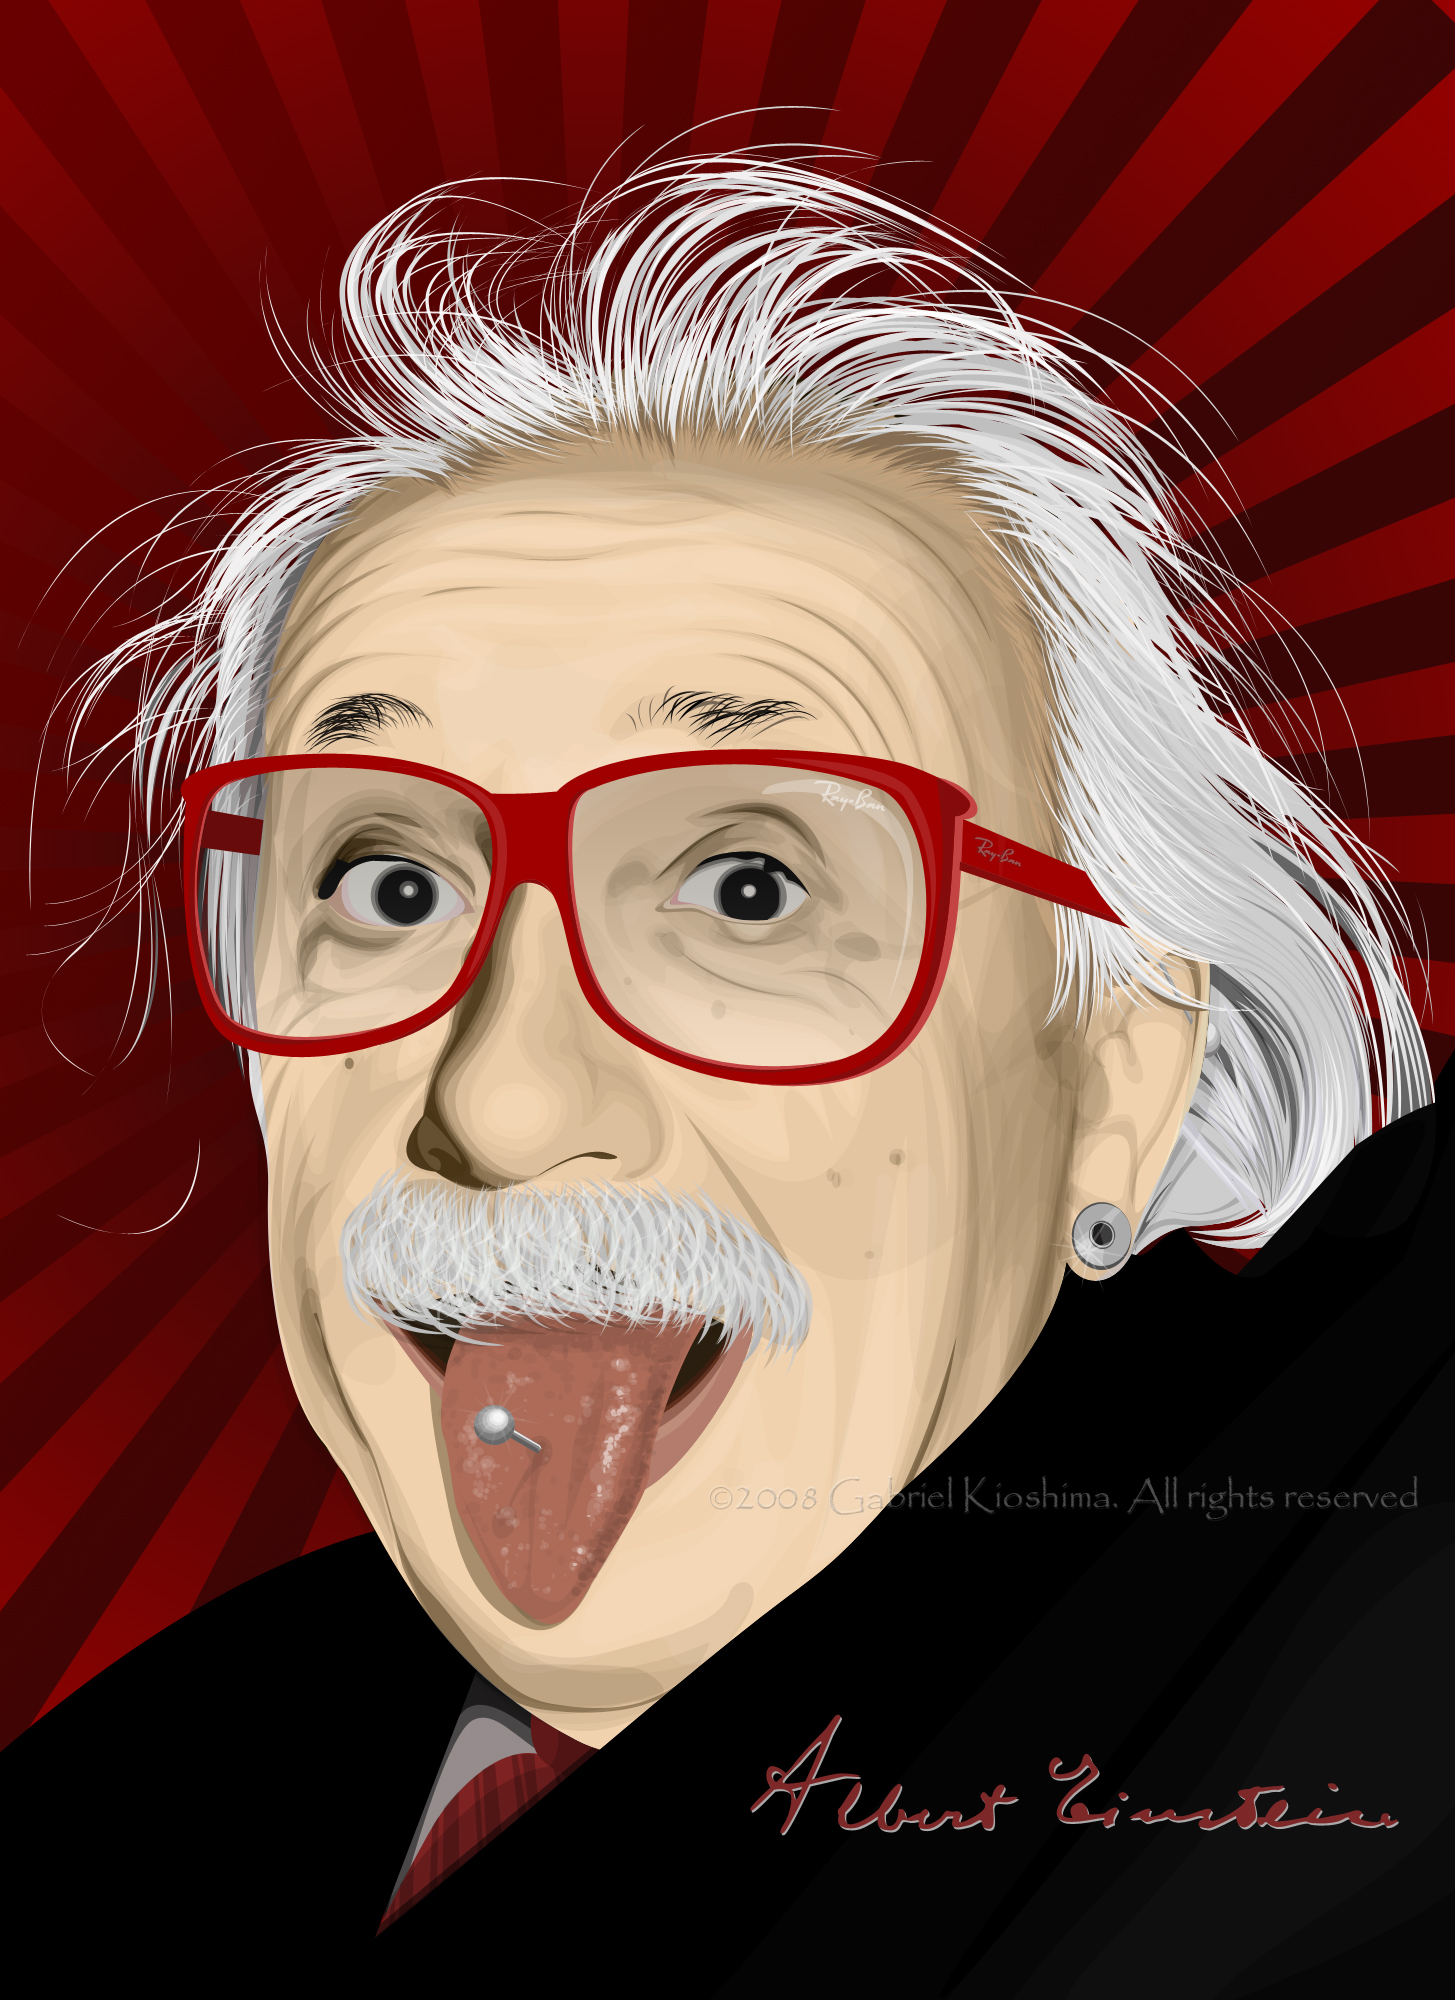 Stylish_Einstein_by_kioshima.jpg